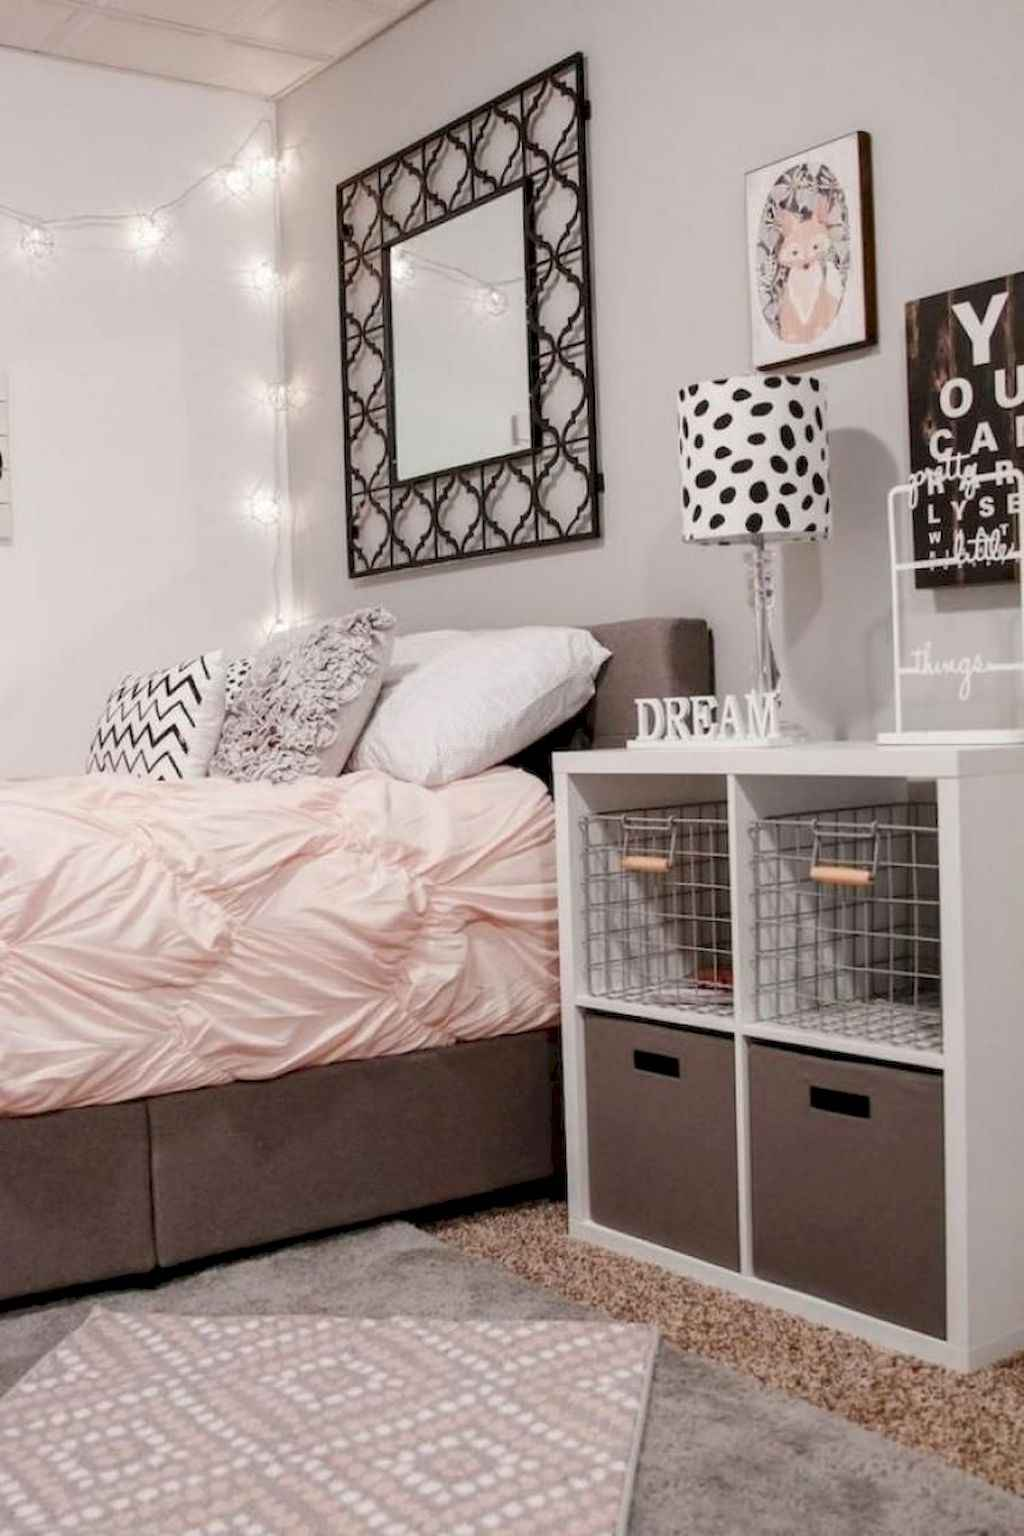 Clever college apartment decorating ideas on a budget (56)